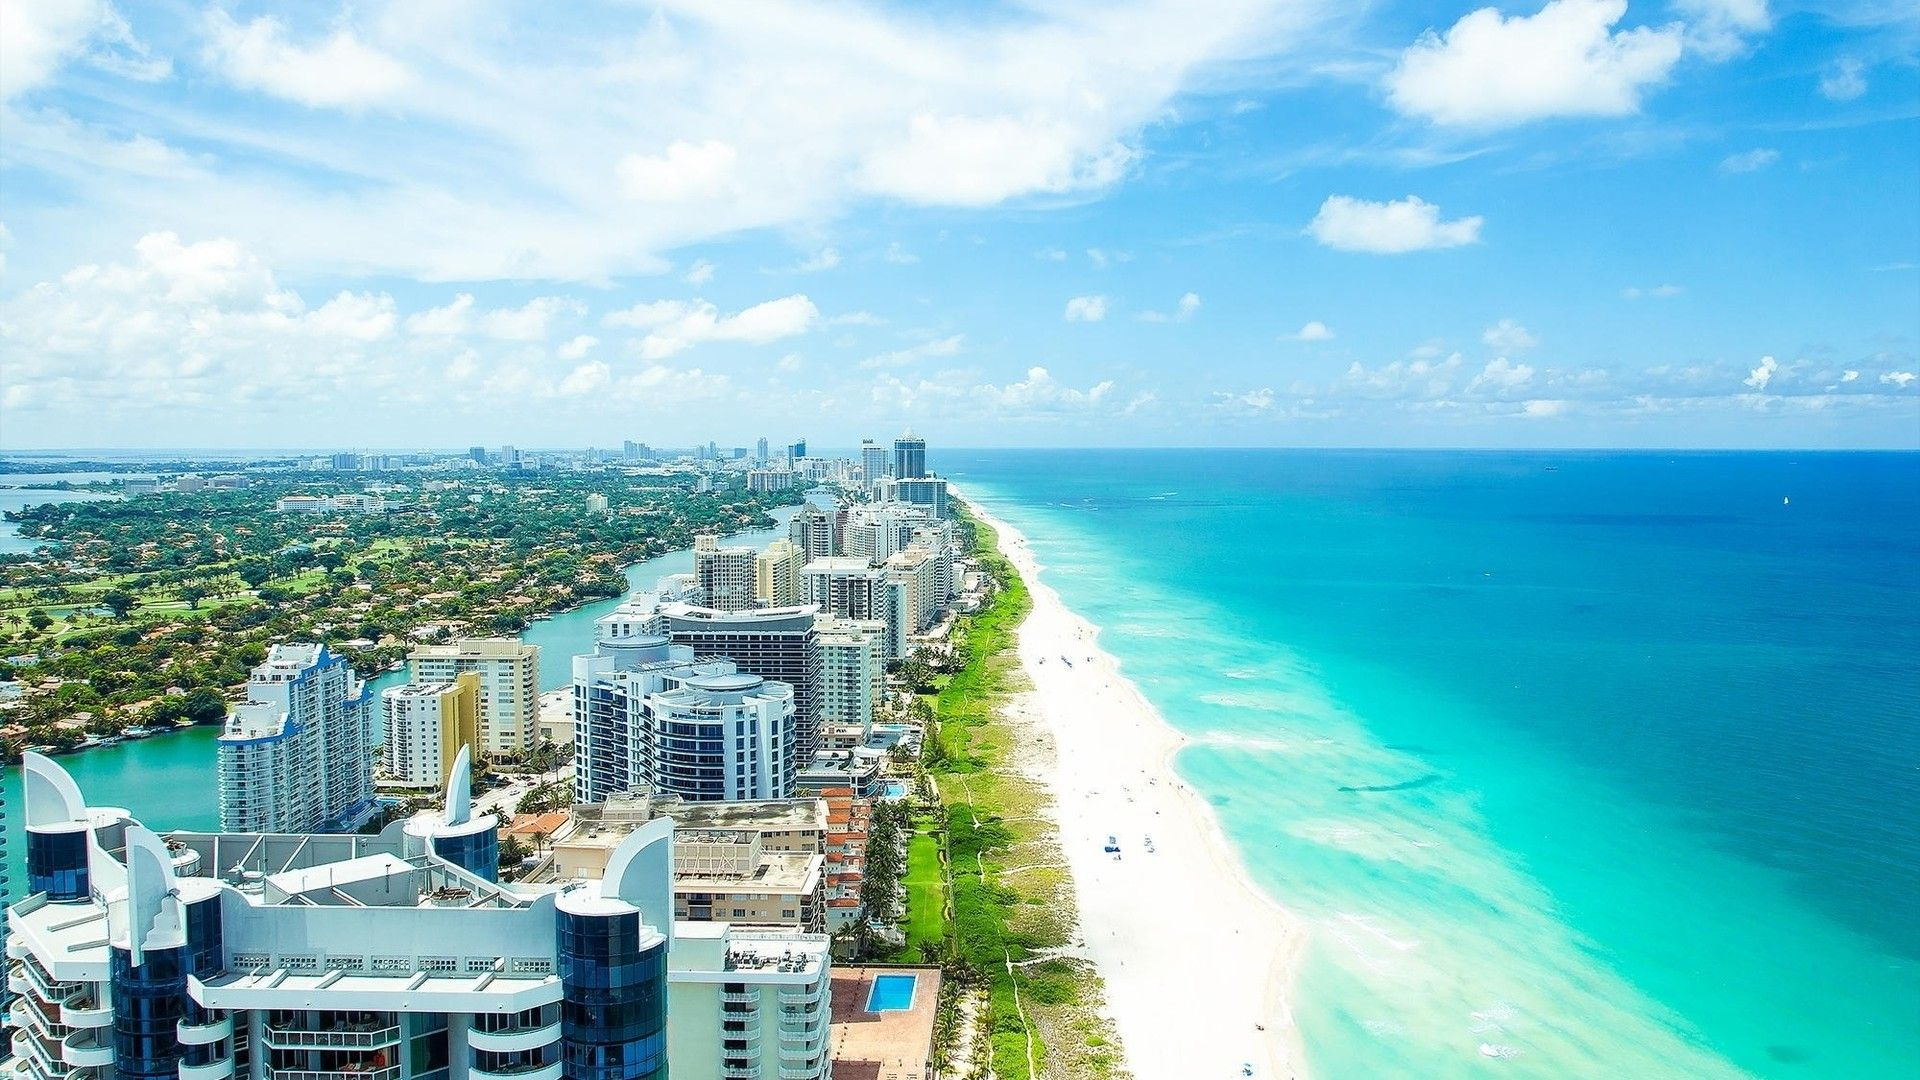 Miami Beach Wallpapers Top Free Miami Beach Backgrounds Wallpaperaccess